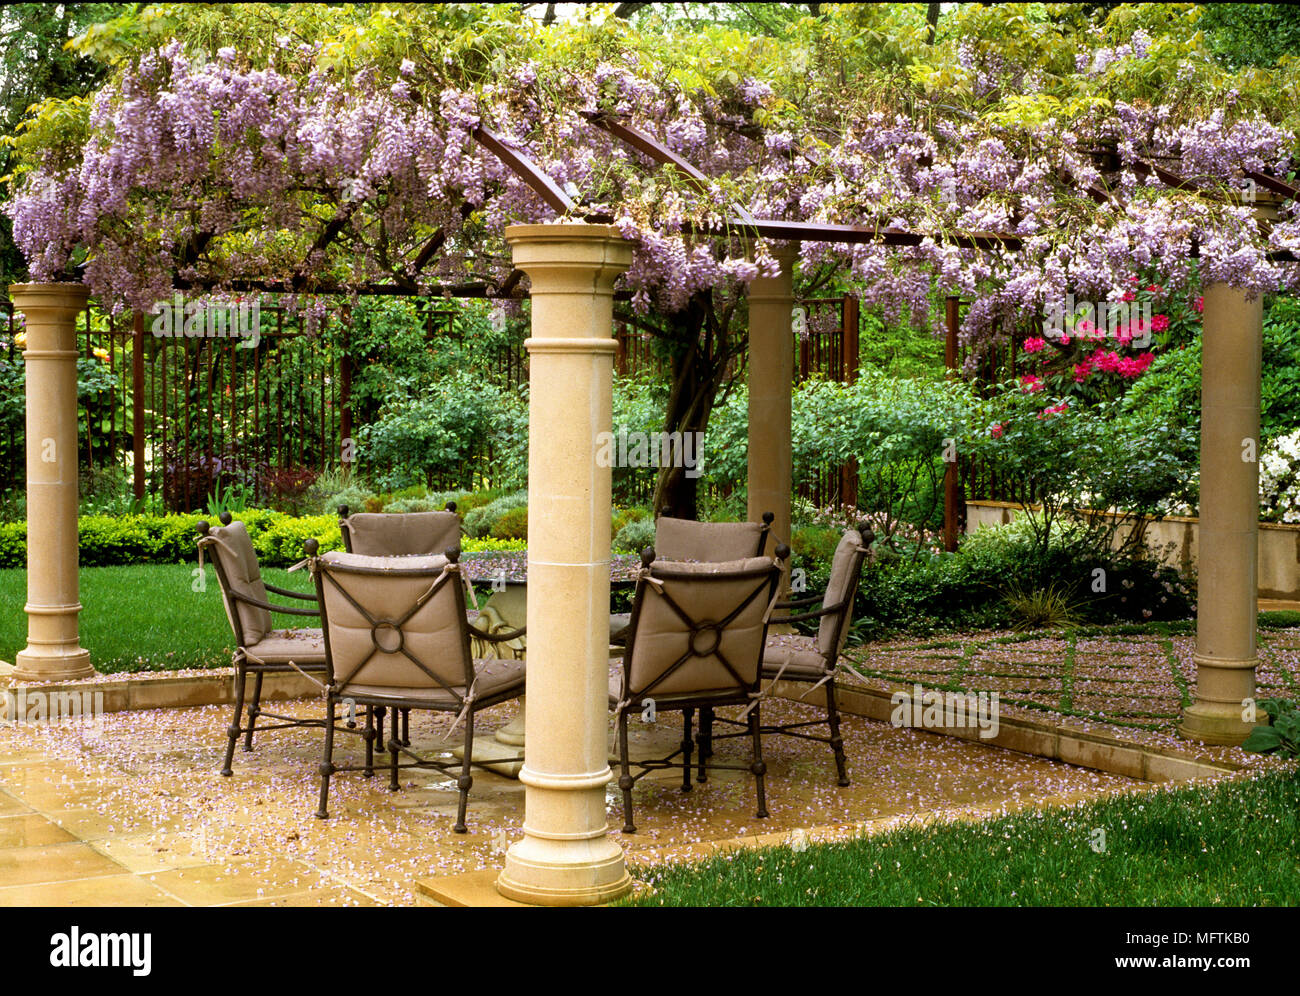 Coglizer Garden With Table And Chairs On Patio Covered With Wisteria  Sinensis